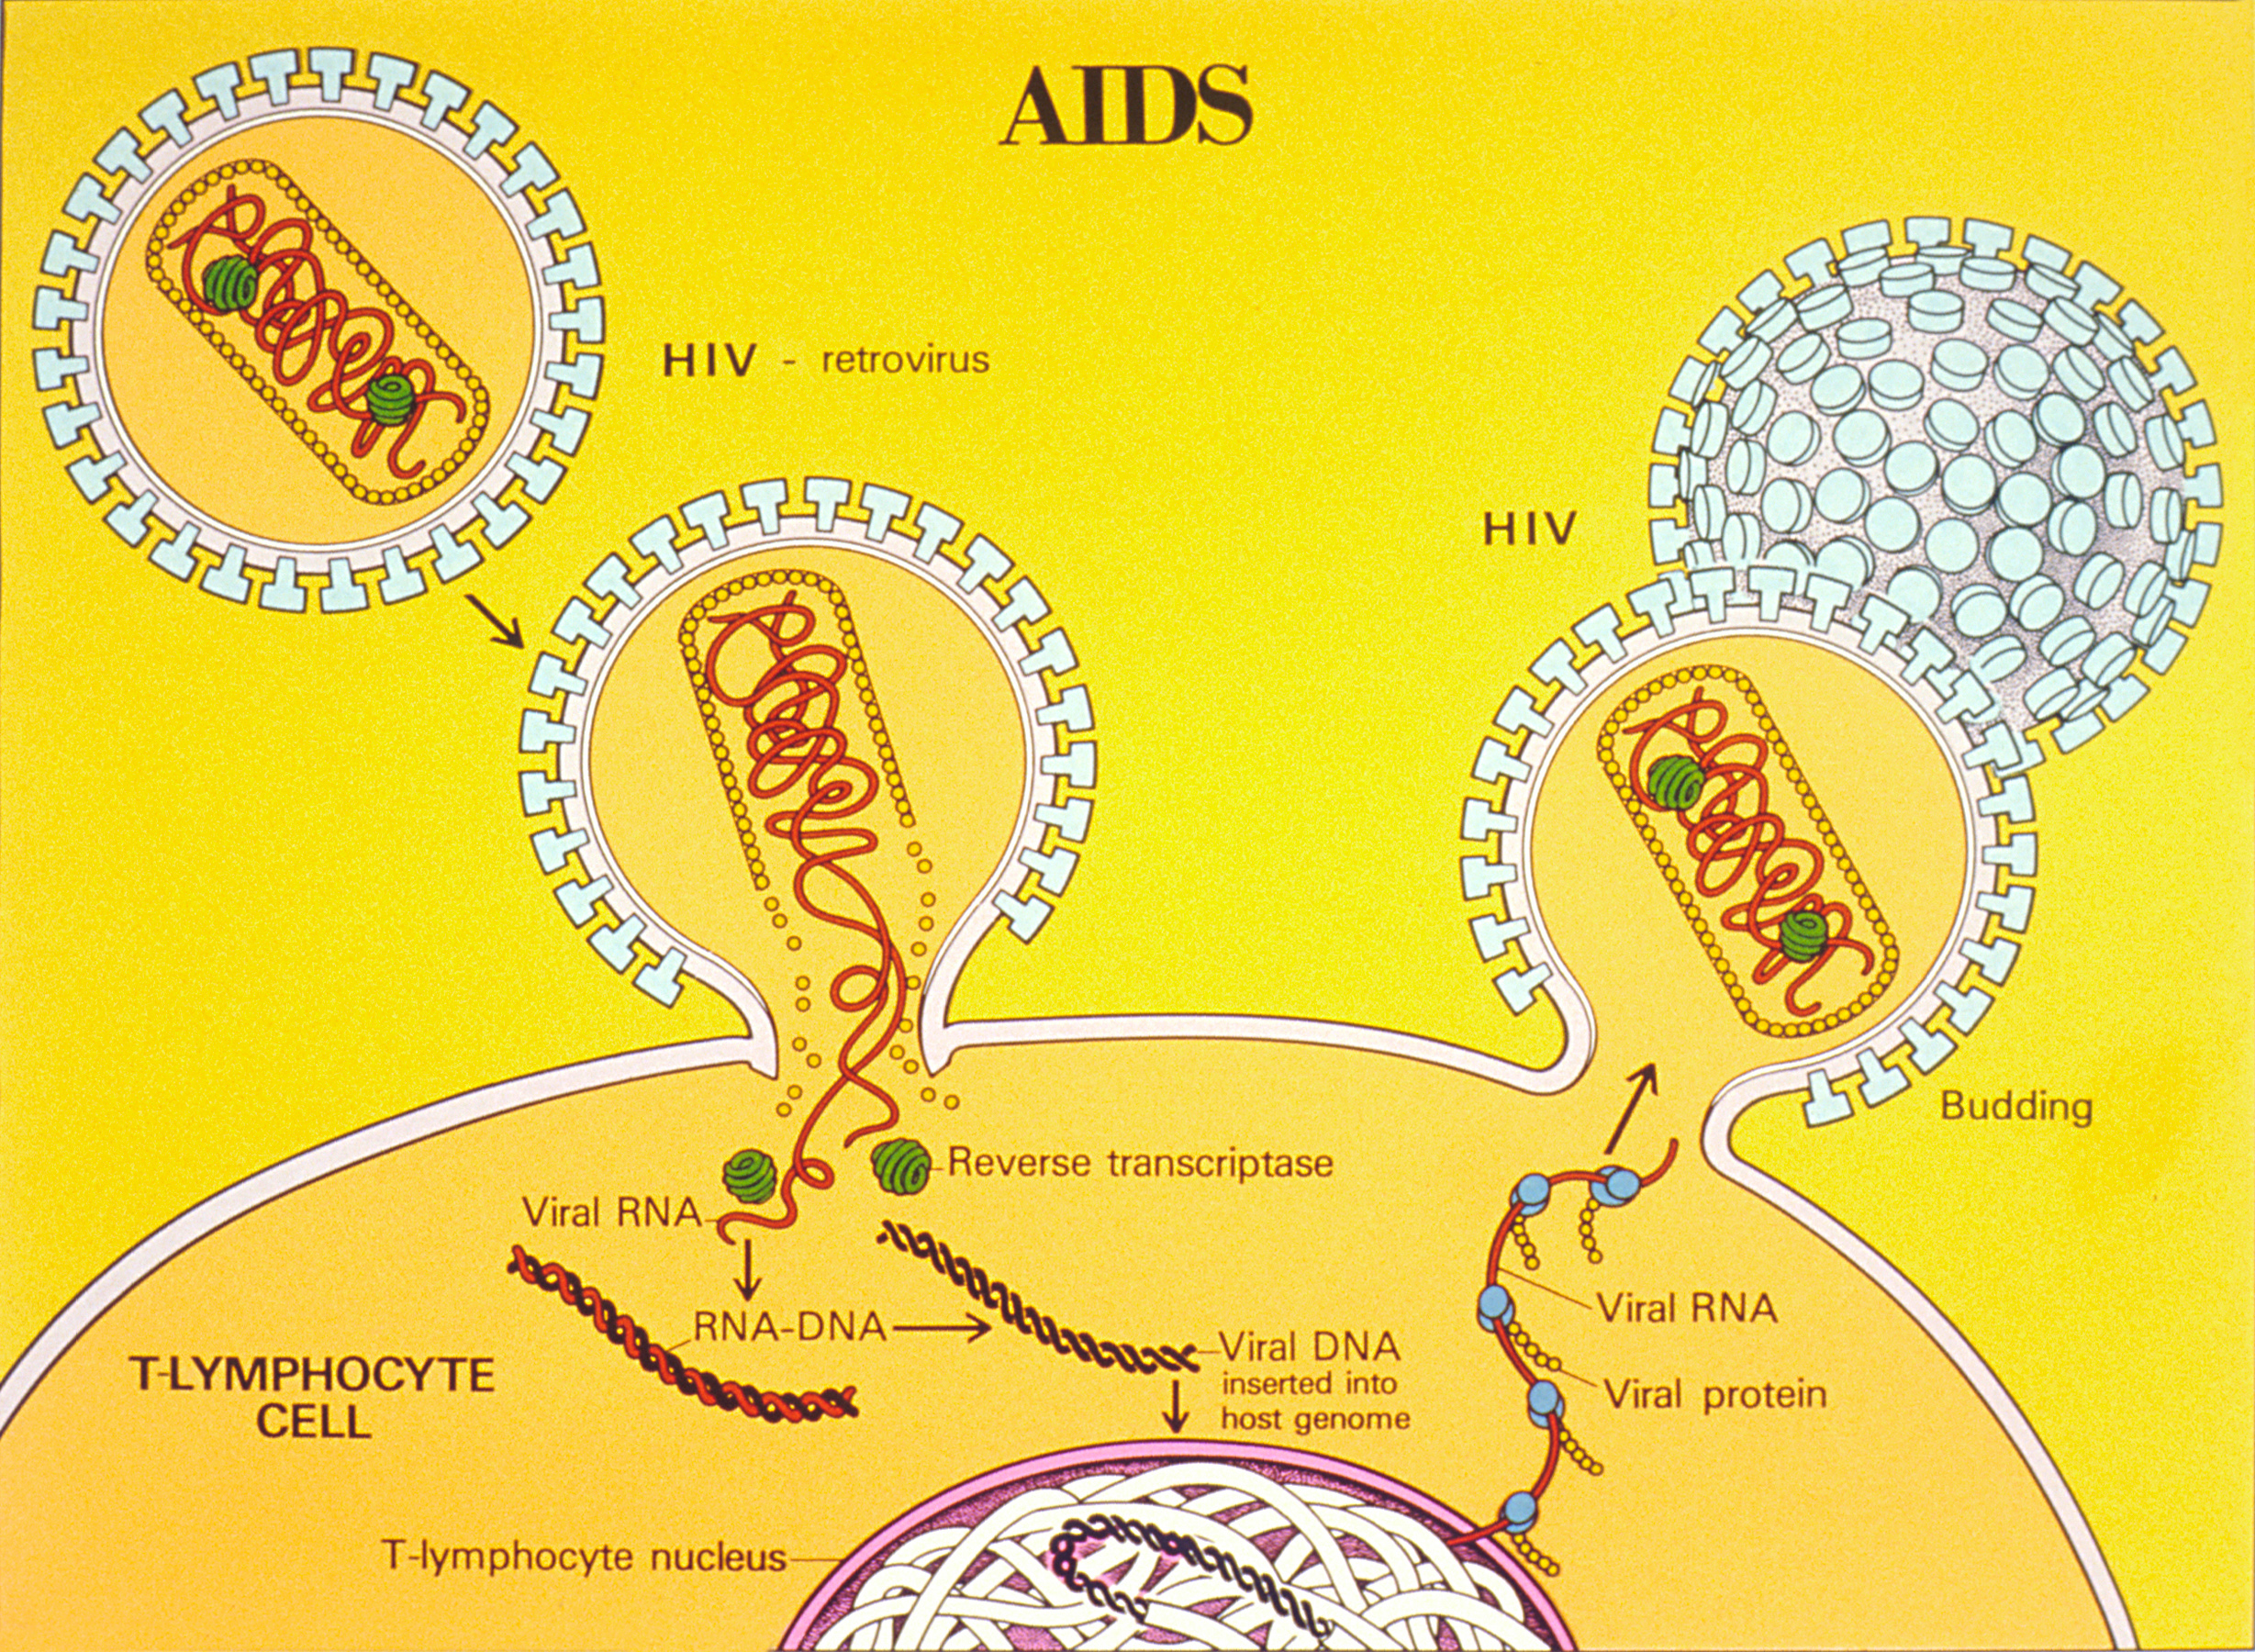 AIDS life cycle illustration